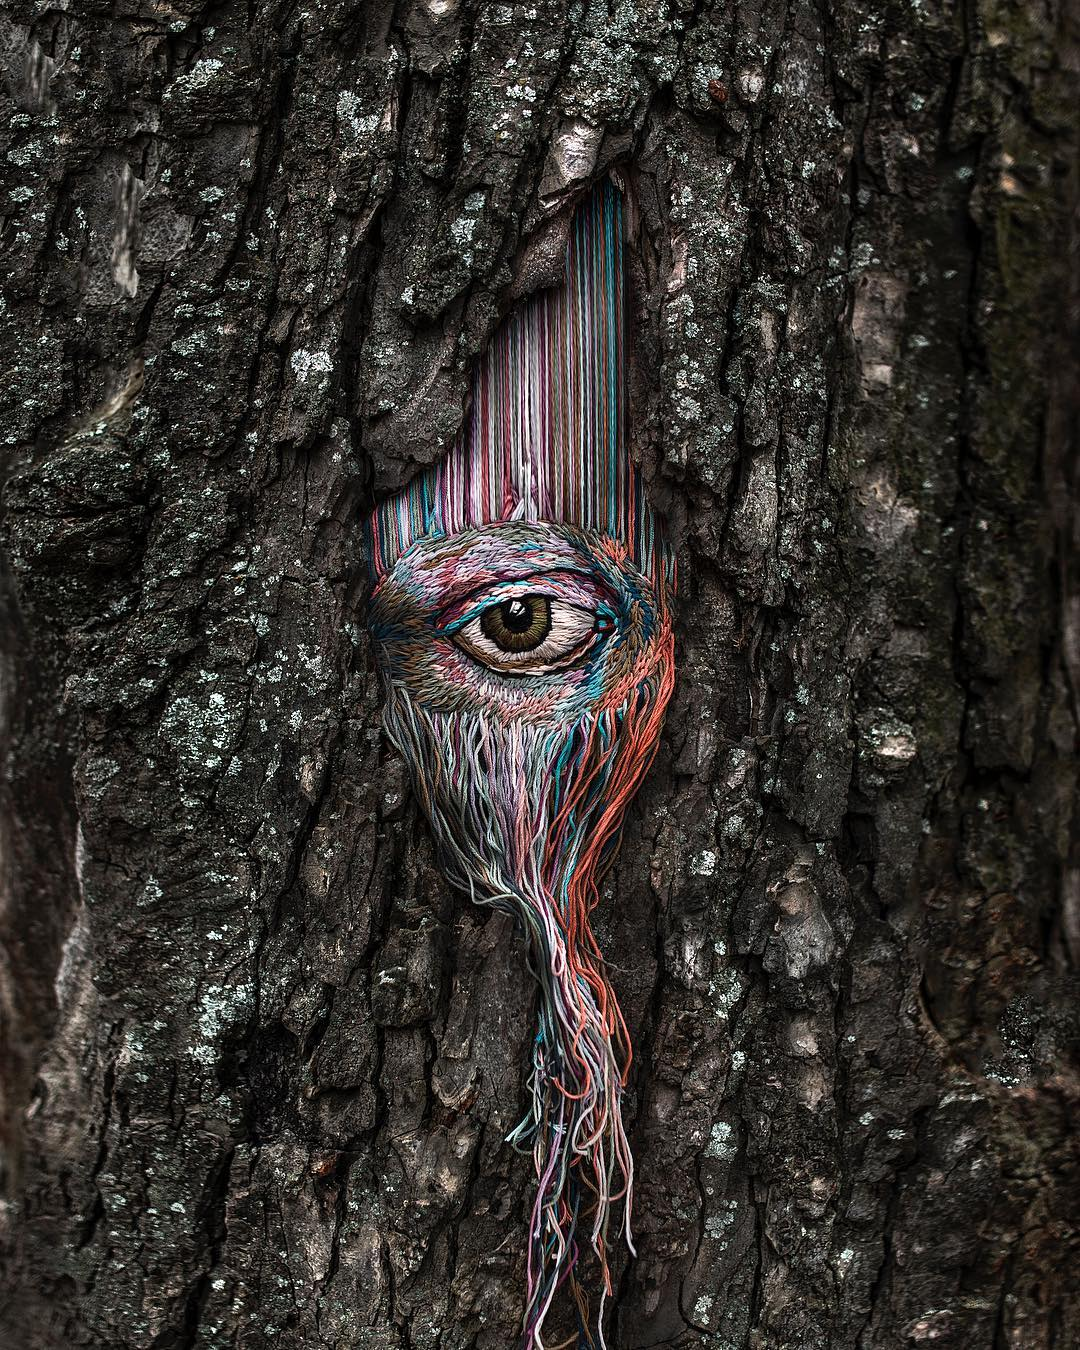 Beautiful Patterns Embroidered Into Crevices of Trees